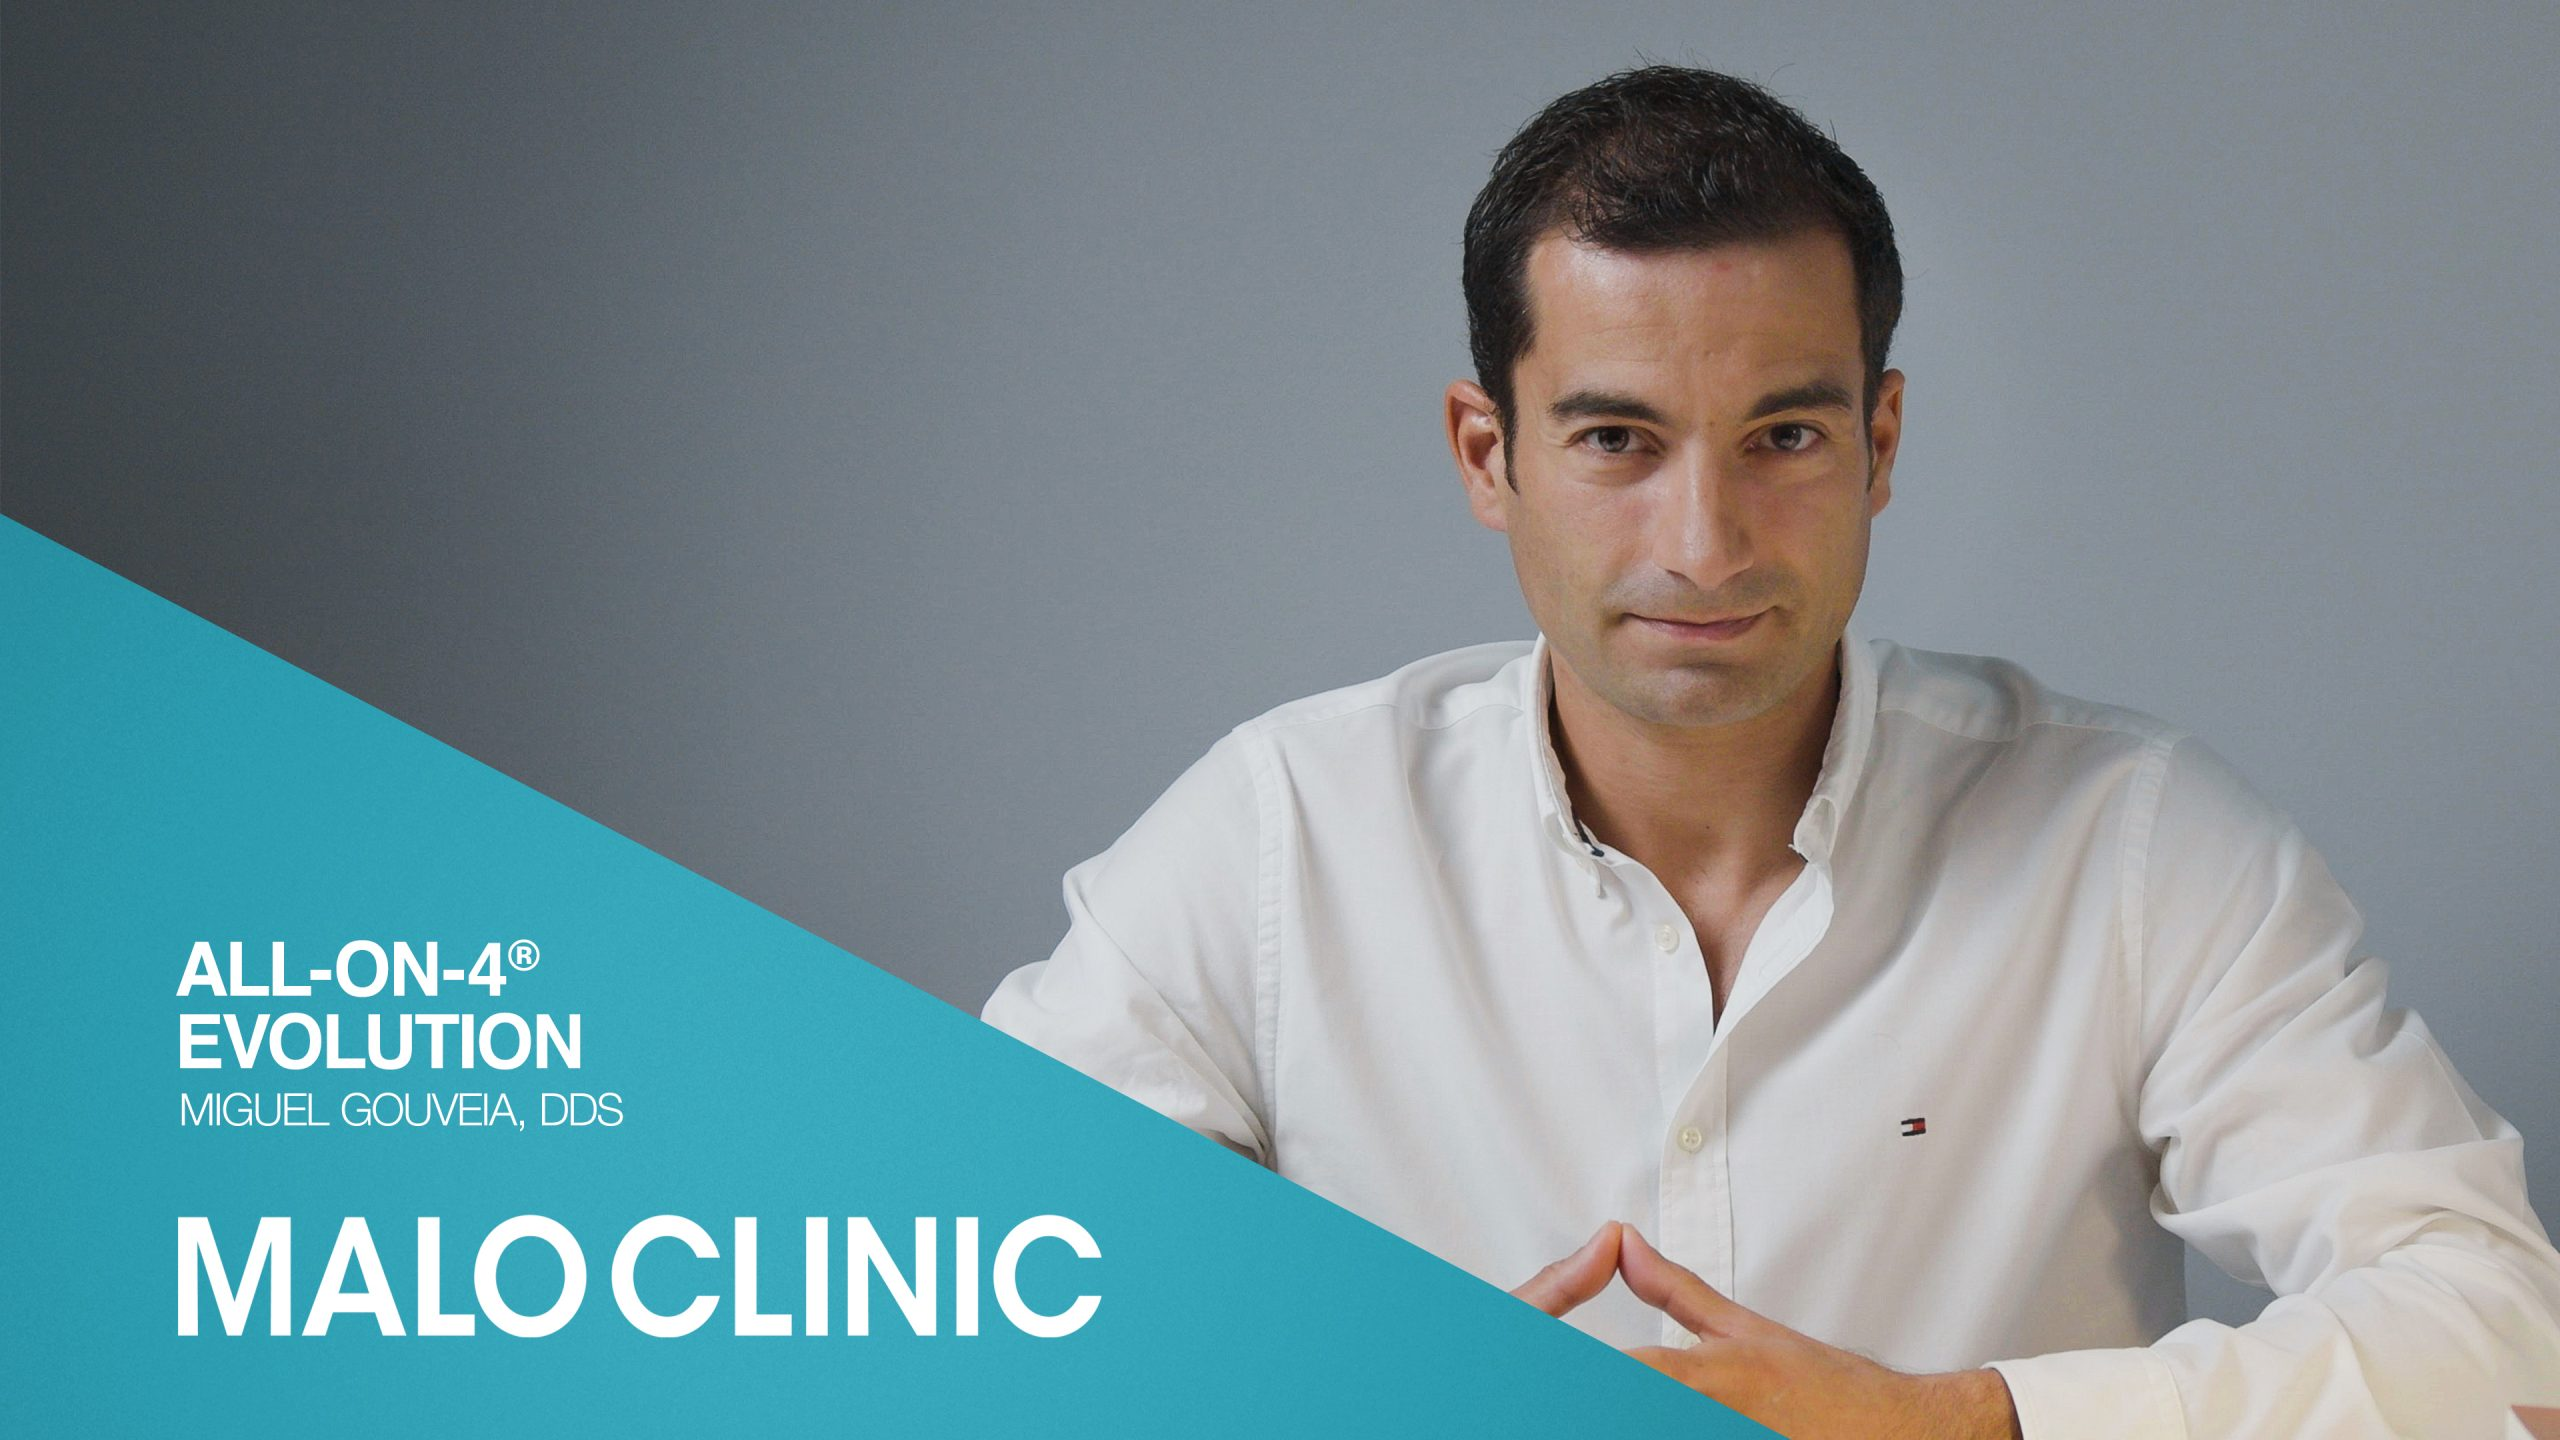 All-on-4® MALO Education, Dr. Miguel Gouveia